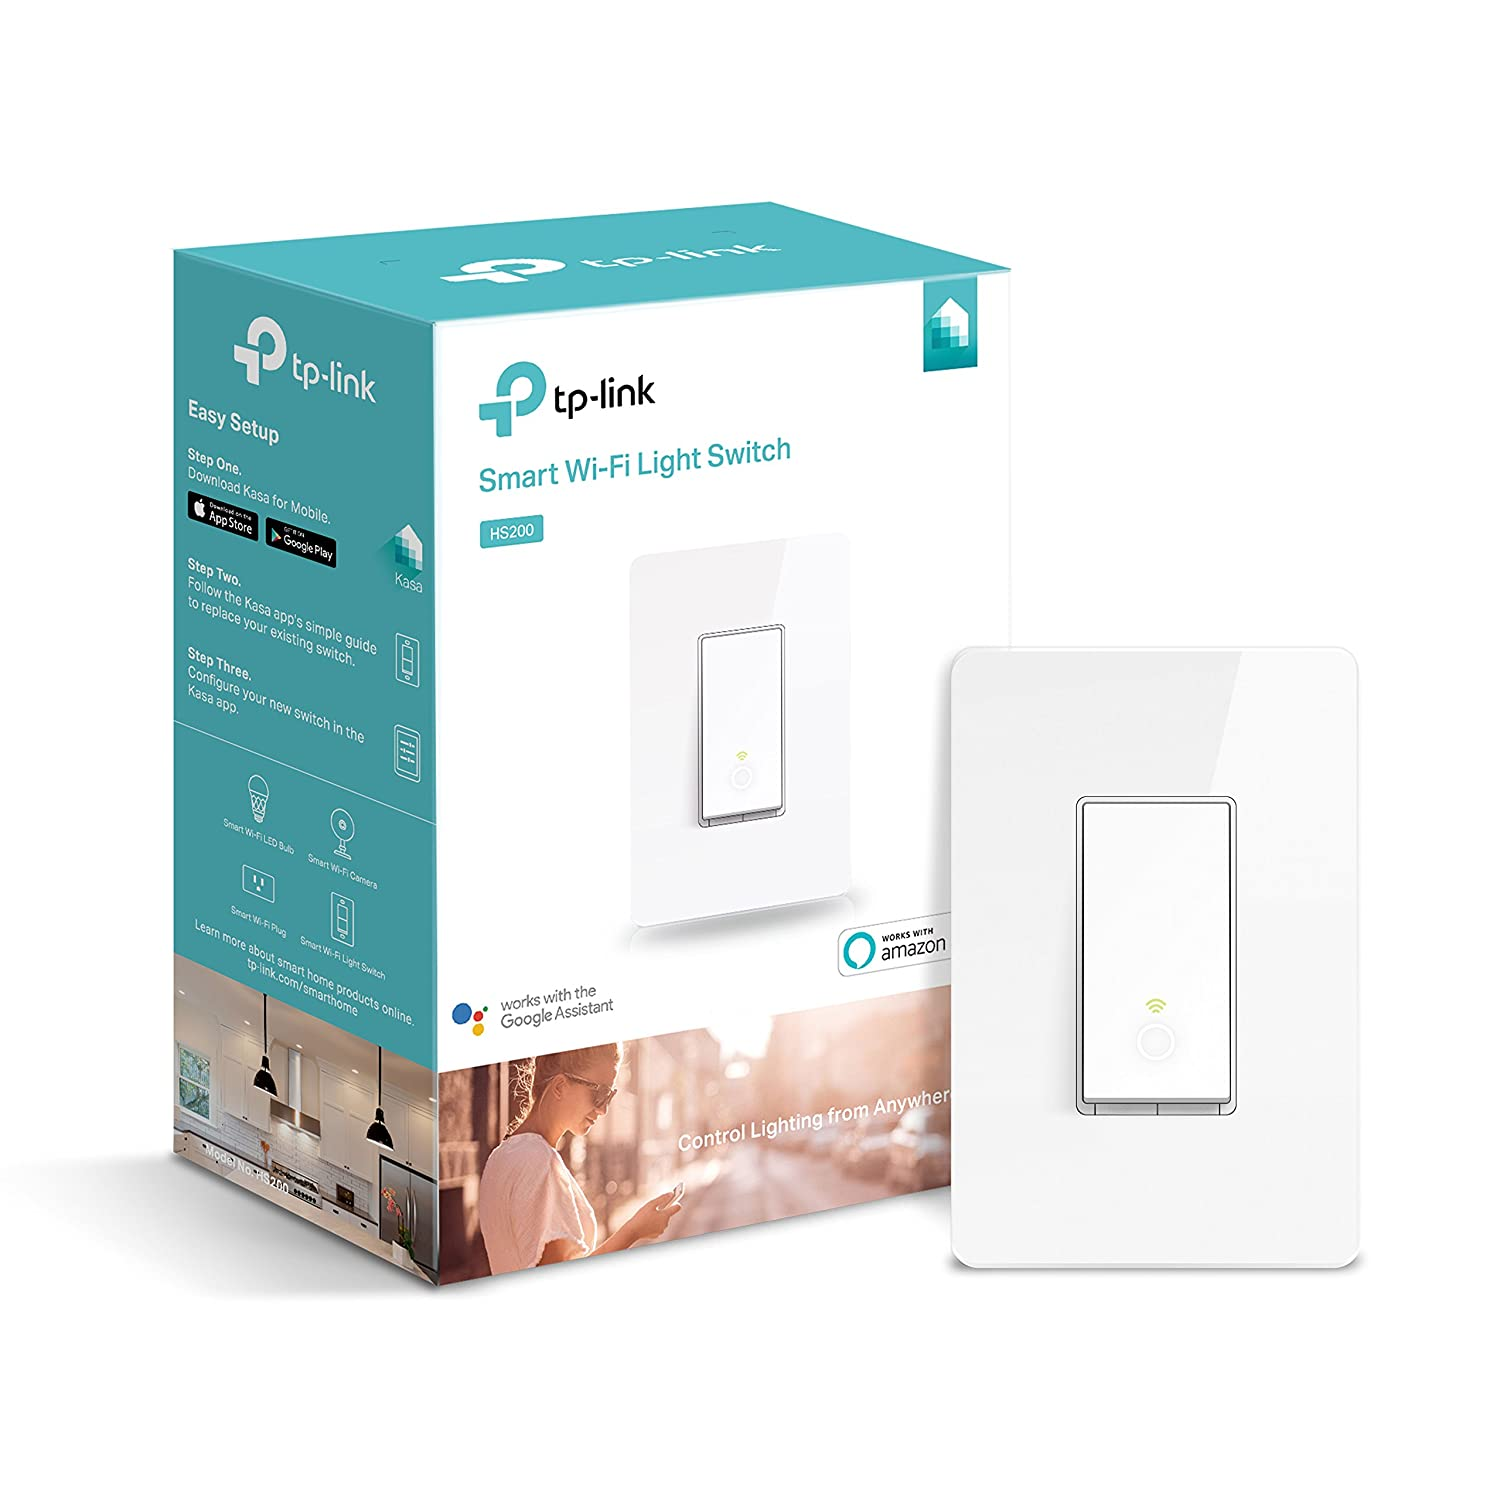 Tp Link Smart Wi Fi Light Switch No Hub Required Single Pole Wiring Wirea3waylightswitchstep Requires Neutral Wire Works With Alexa And Google Assistant Hs200 Tools